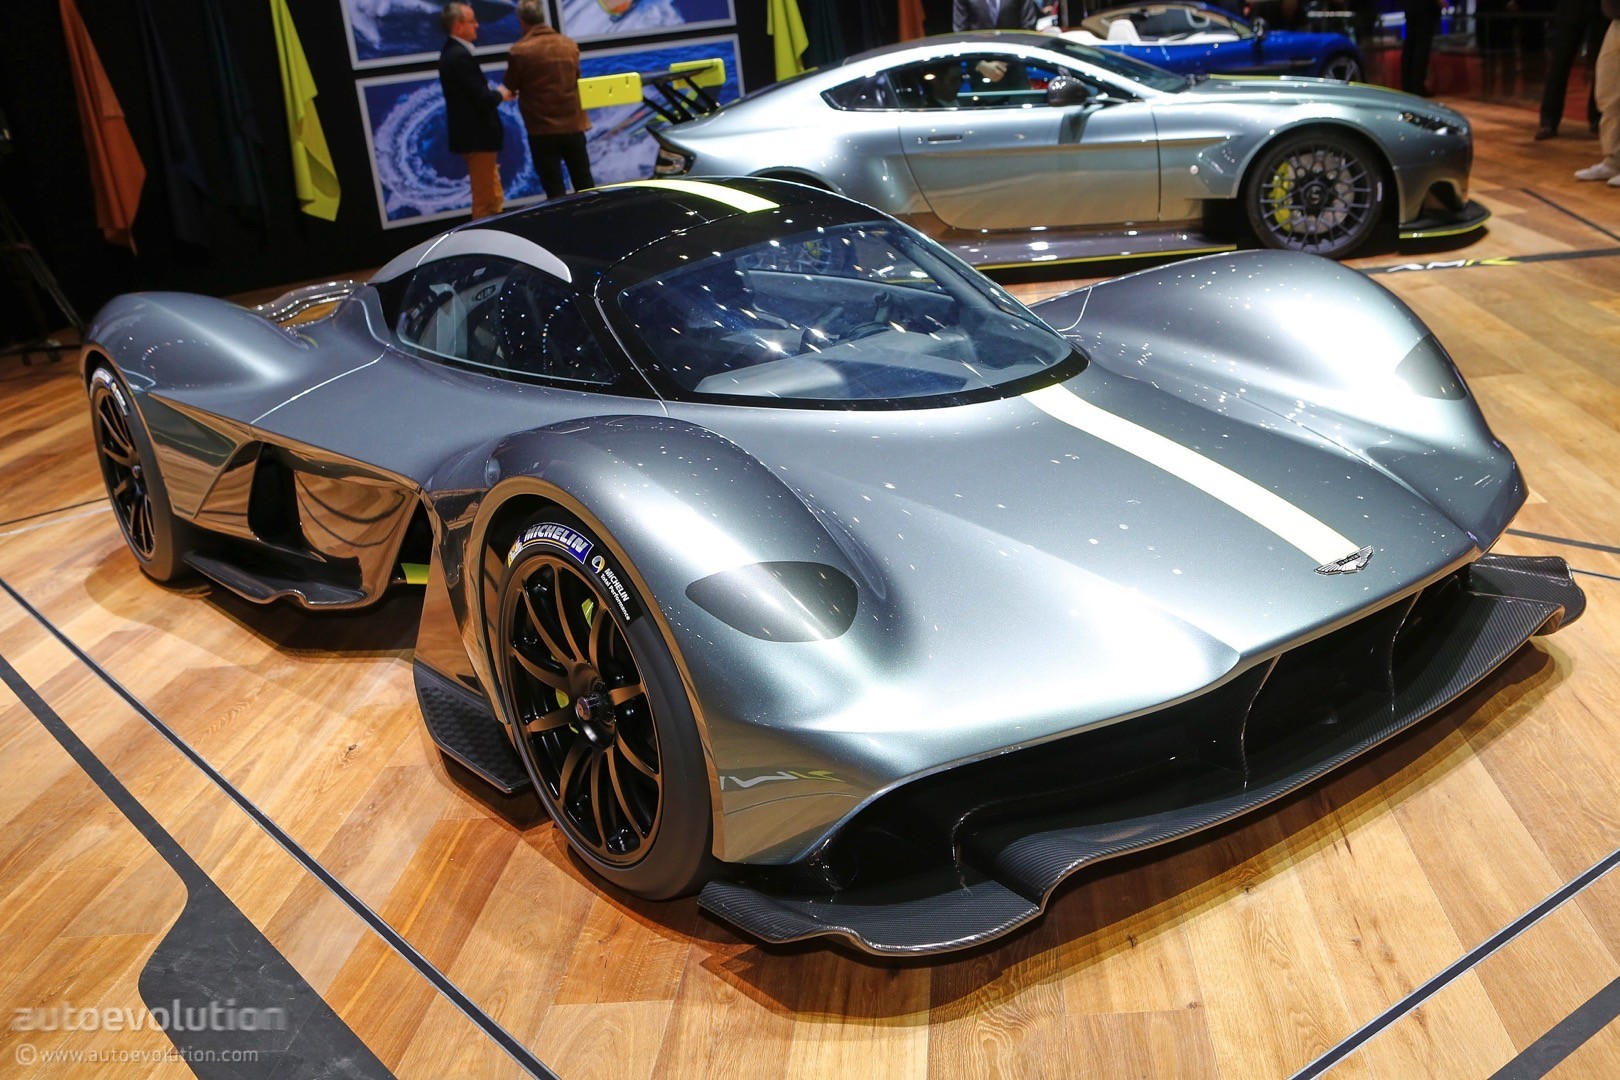 Aston Martin Valkyrie Reportedly Packs Around Hp further Ferrari Superforte together with Aston Martin Displays Harrods Storefront furthermore Aston Martin Vantage as well Aston Martin Vanquish S Spied For The First Time. on aston martin db11